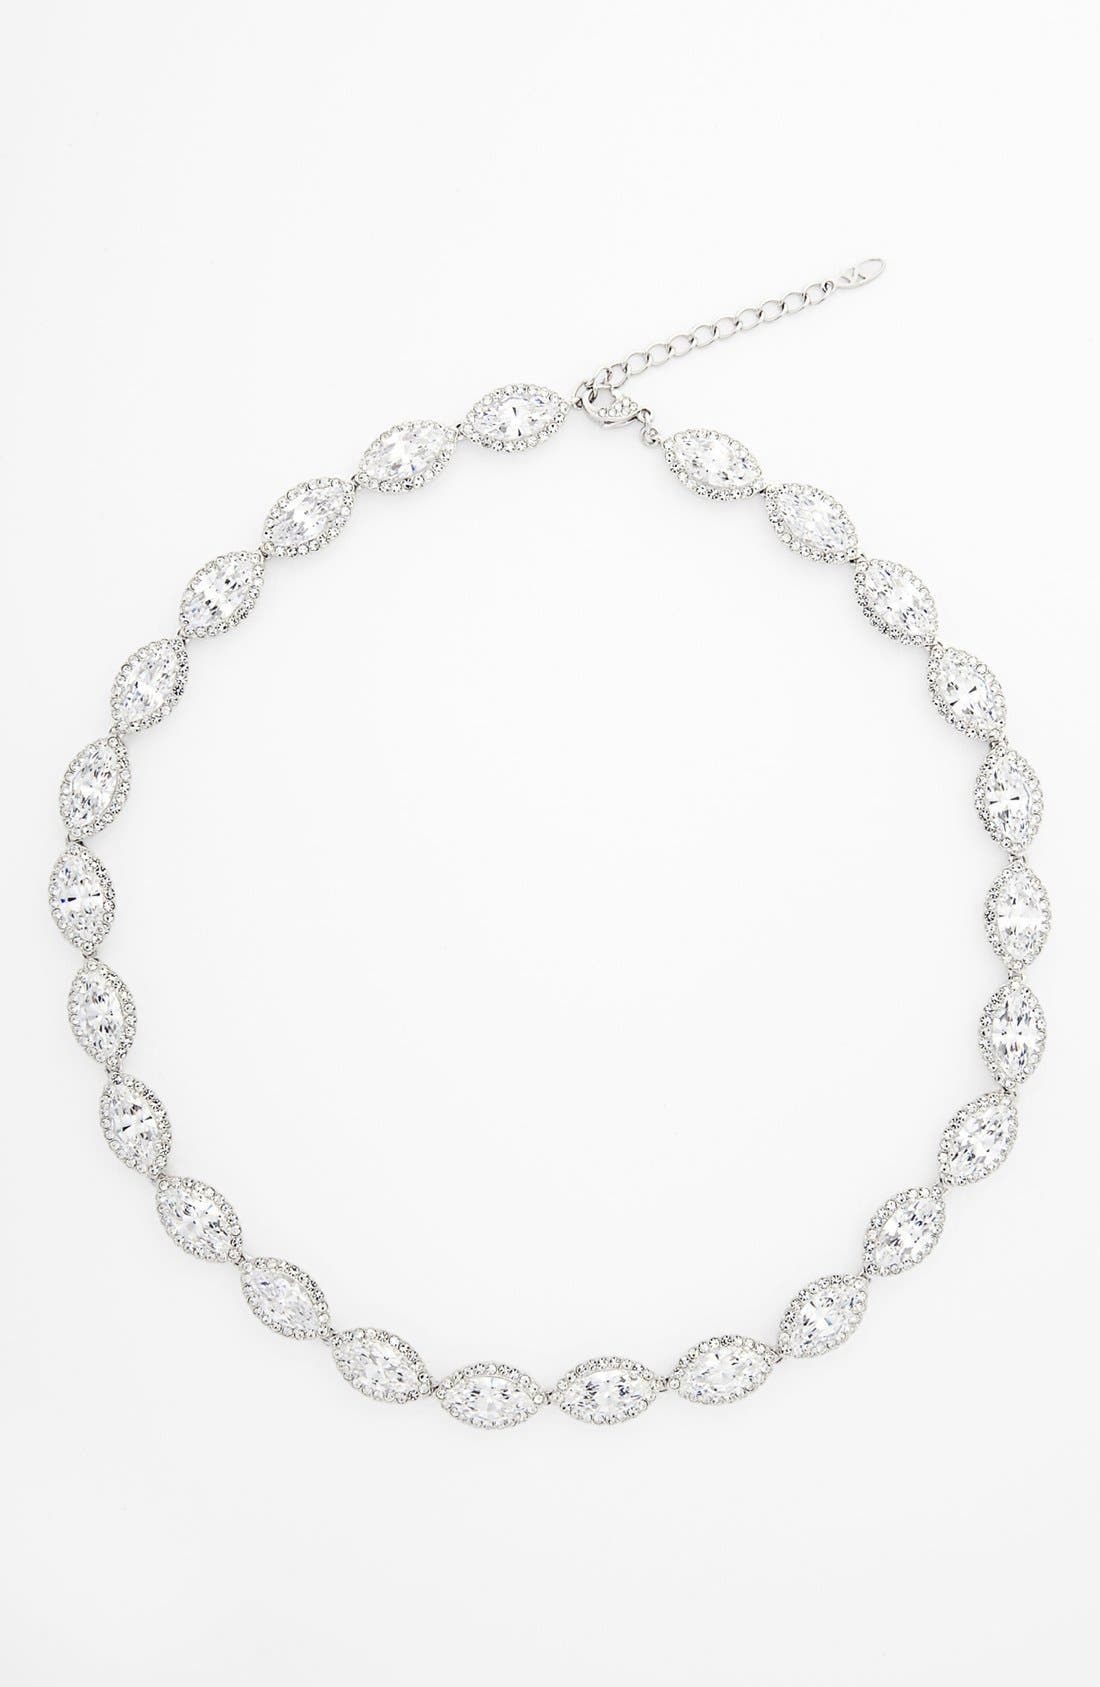 Alternate Image 1 Selected - Nadri 'Marquise' Cubic Zirconia Necklace